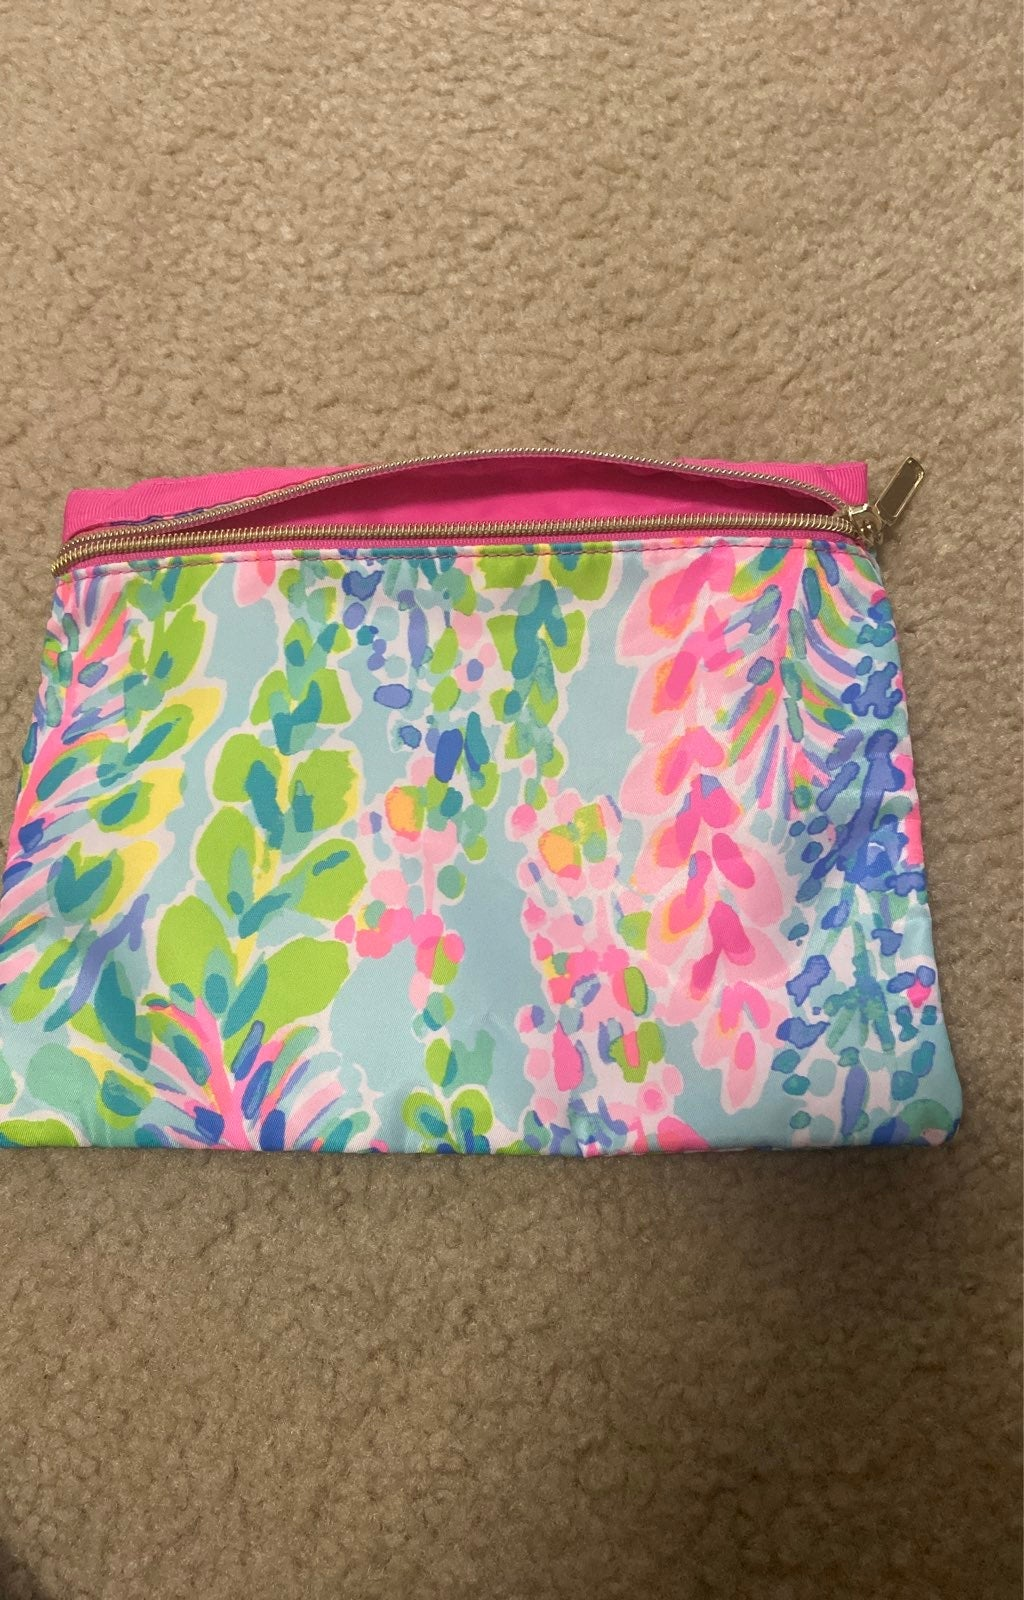 Lilly pulitzer makeup case